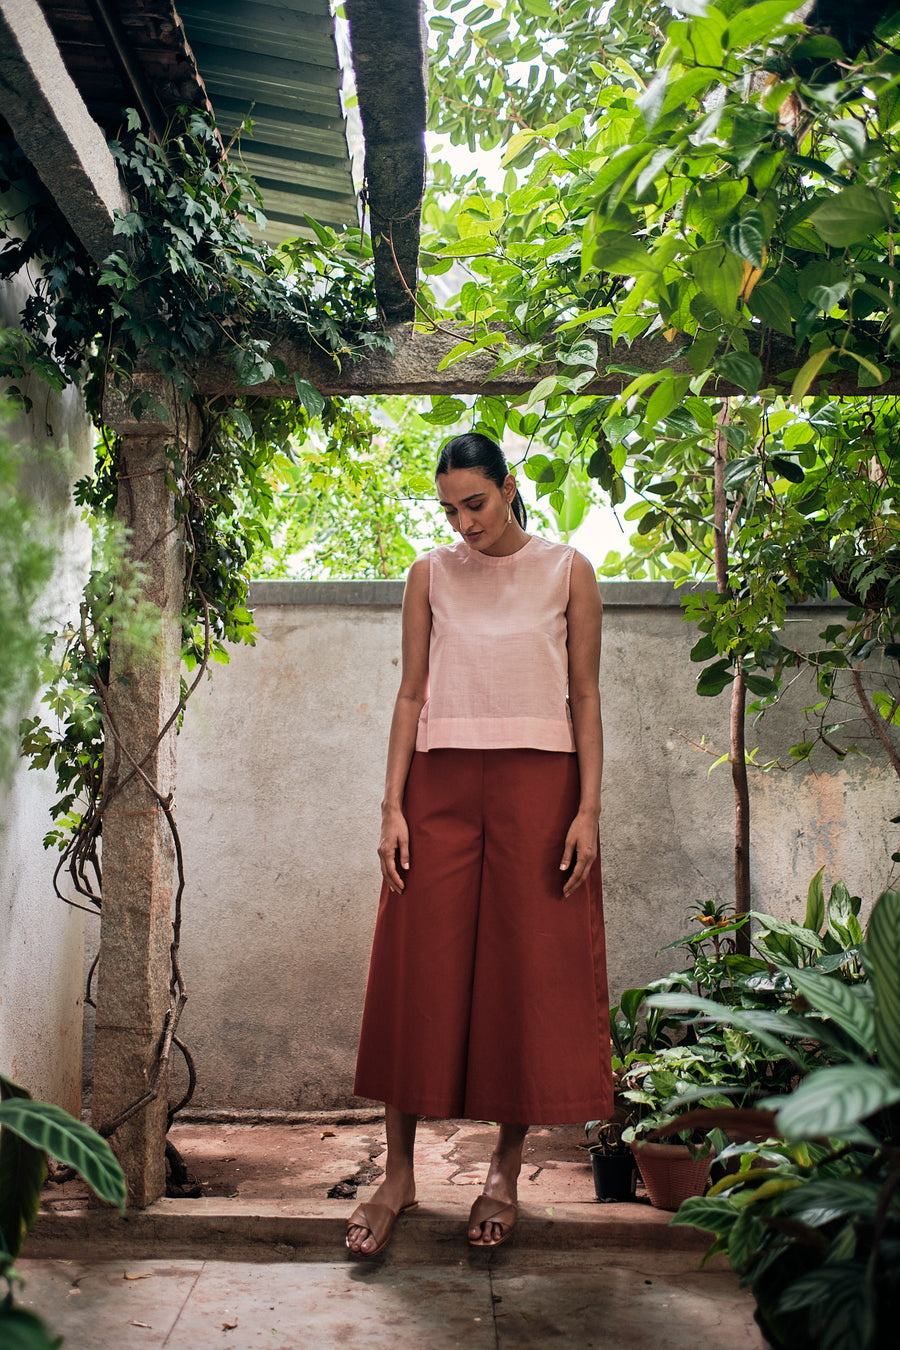 Brad brown pants - Ethical made fashion - onlyethikal